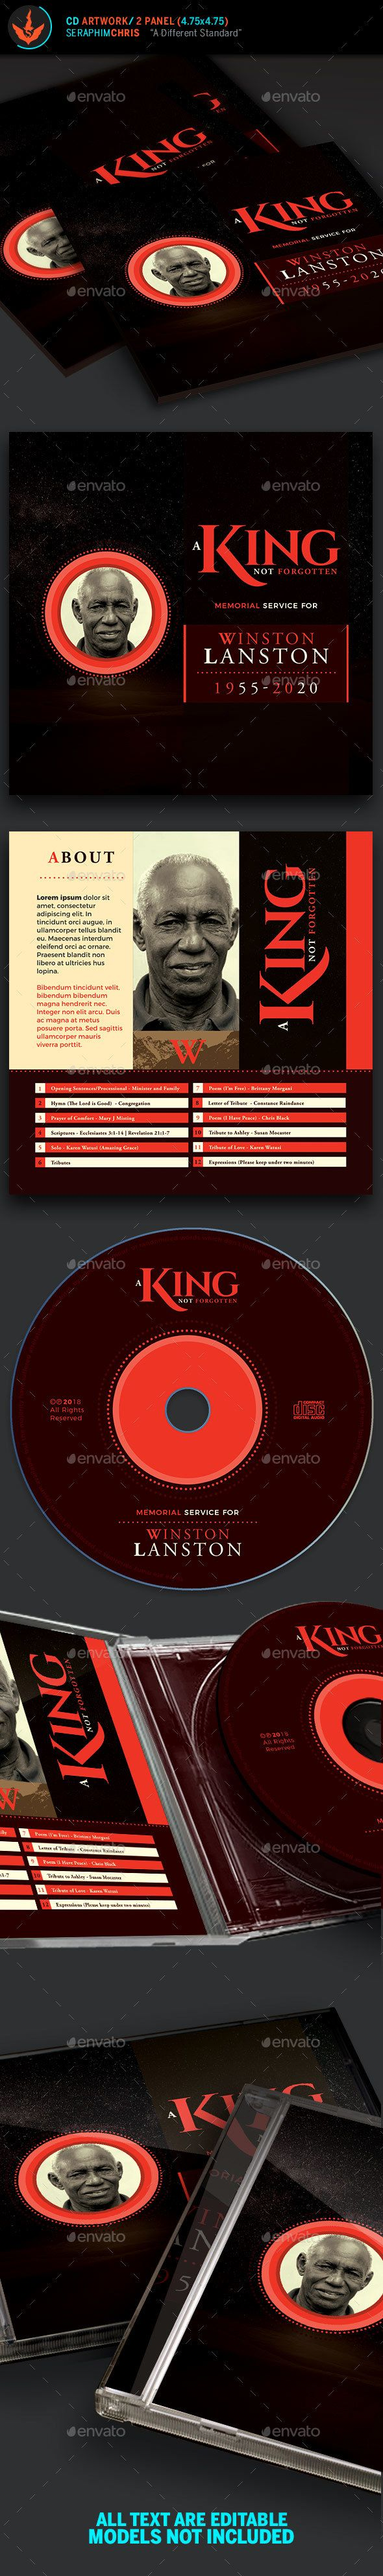 King Funeral #CD Artwork Template - CD & #DVD Artwork Print Templates